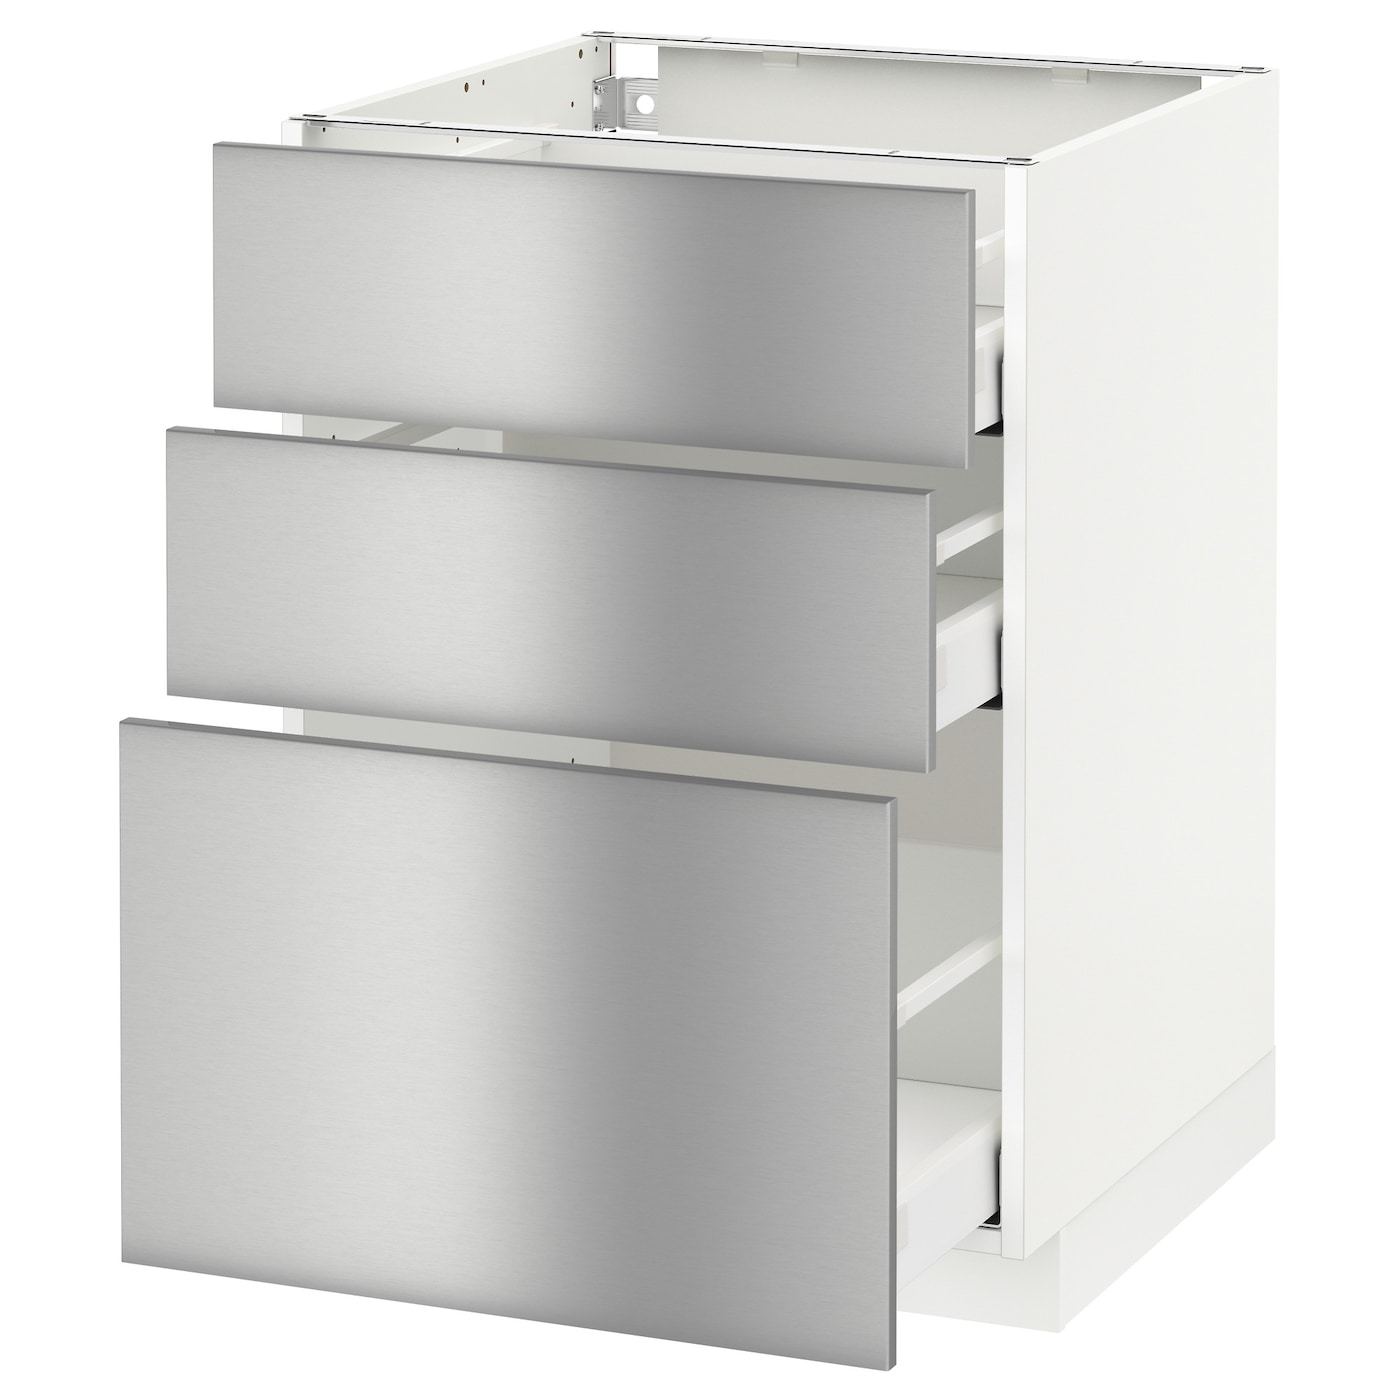 Metod maximera base cabinet with 3 drawers white grevsta for Kitchen cabinets with drawers